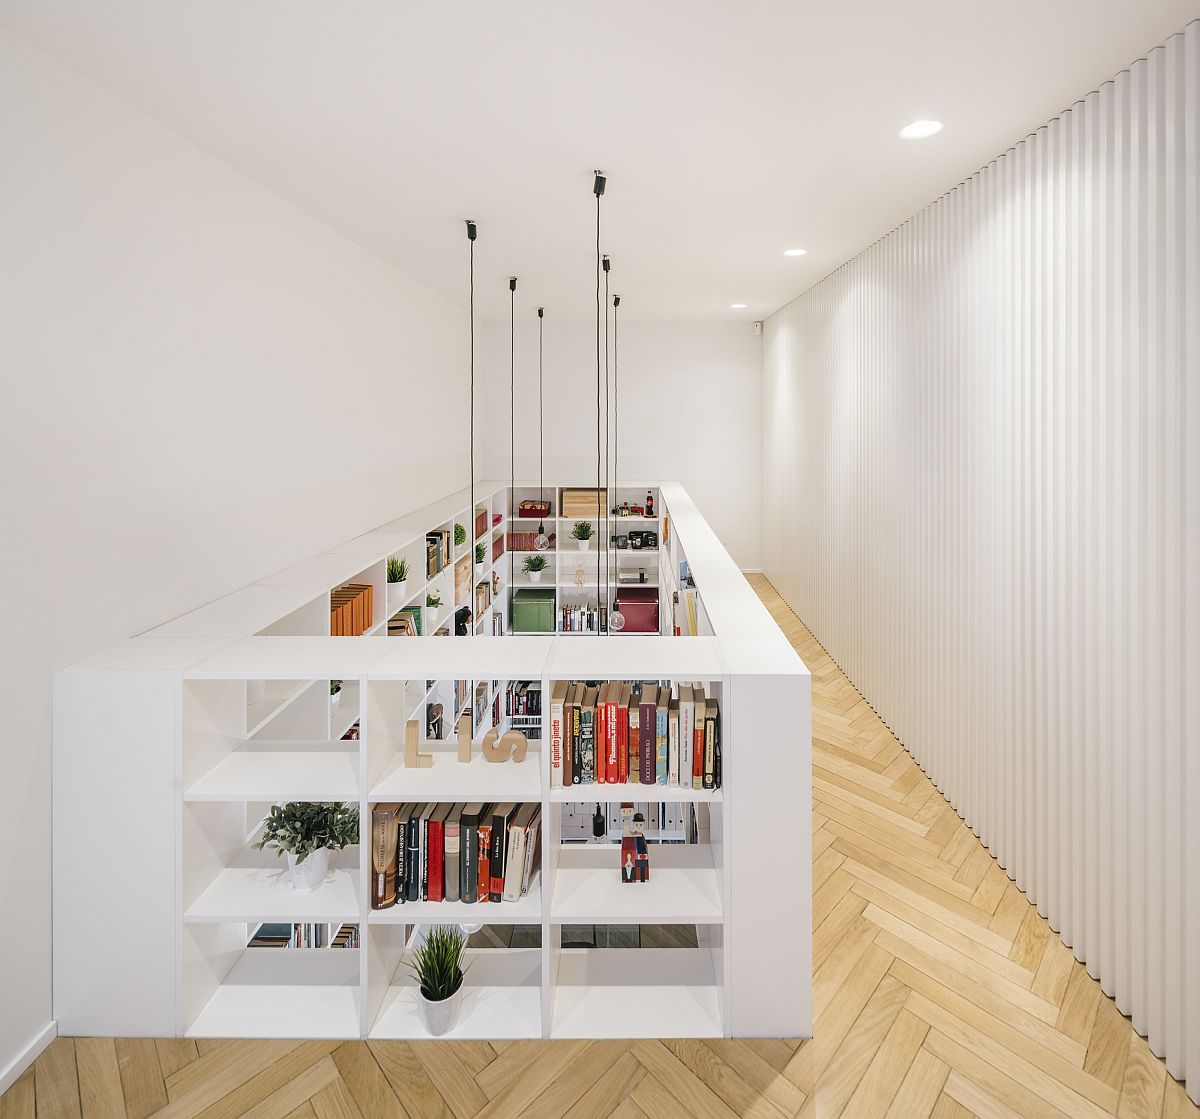 Dramatic bookshelves become a part of both the lower and upper levels of the house